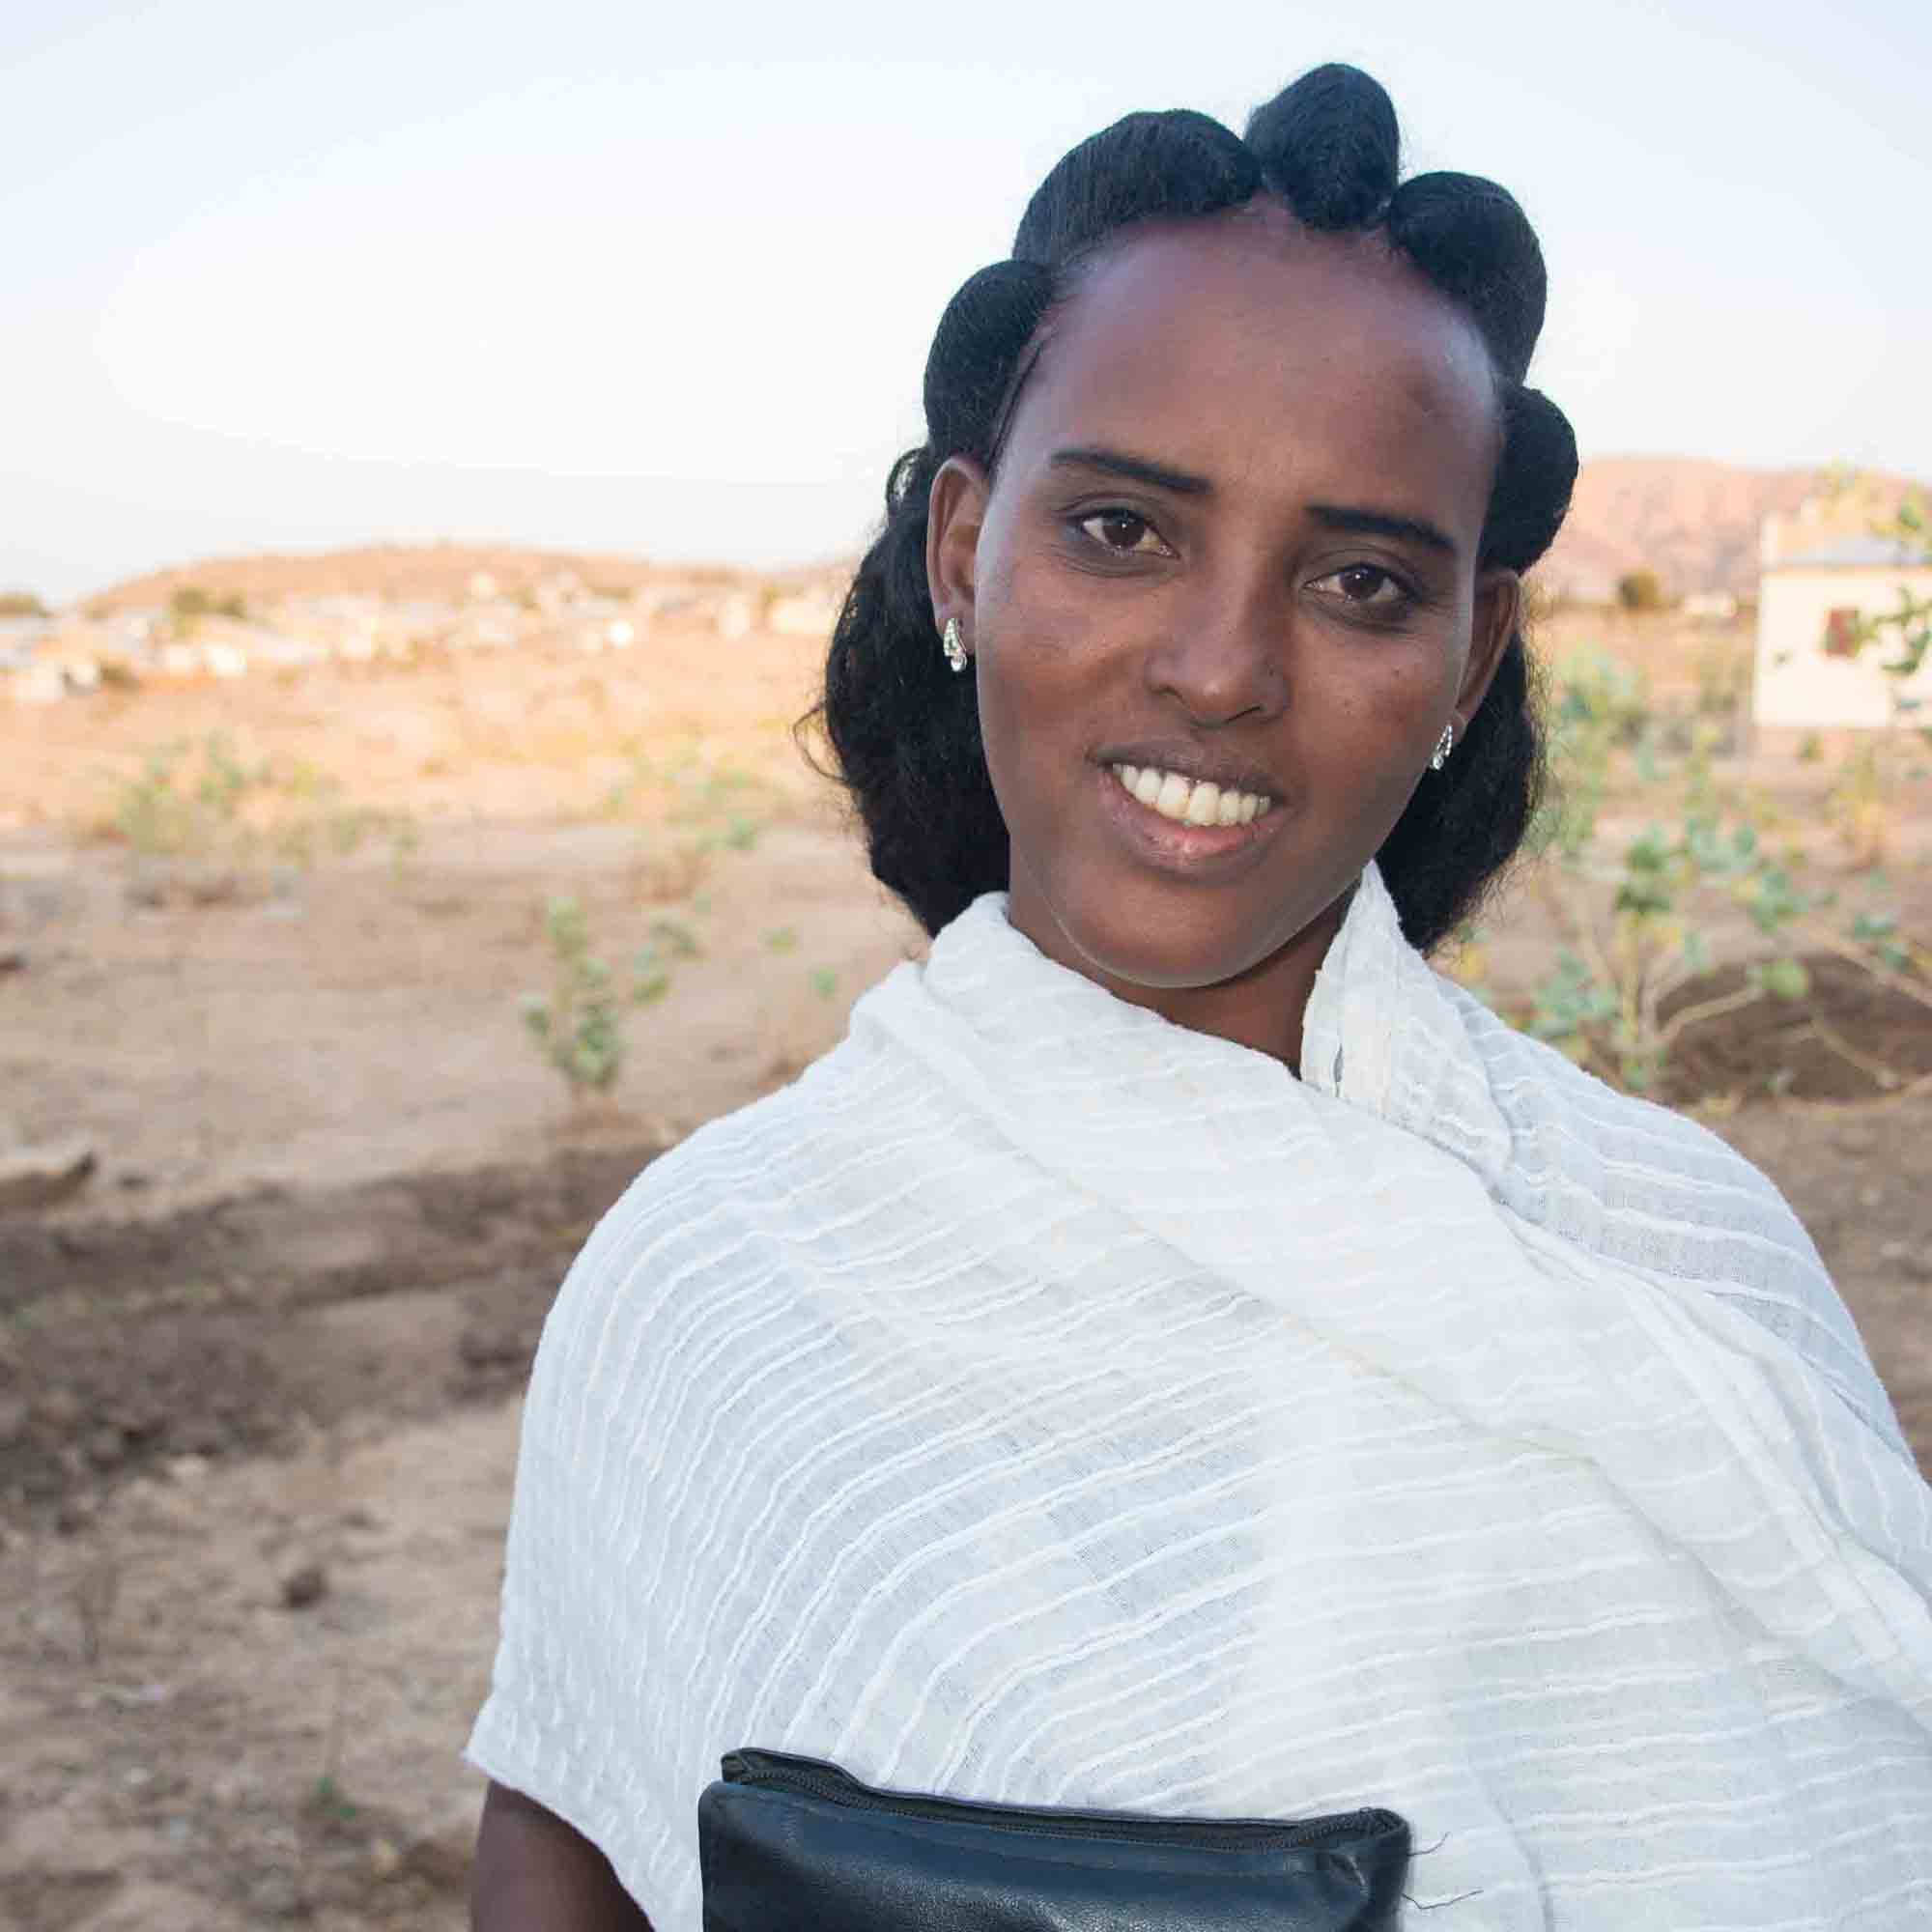 Eritrean believers are praying for change in their country.